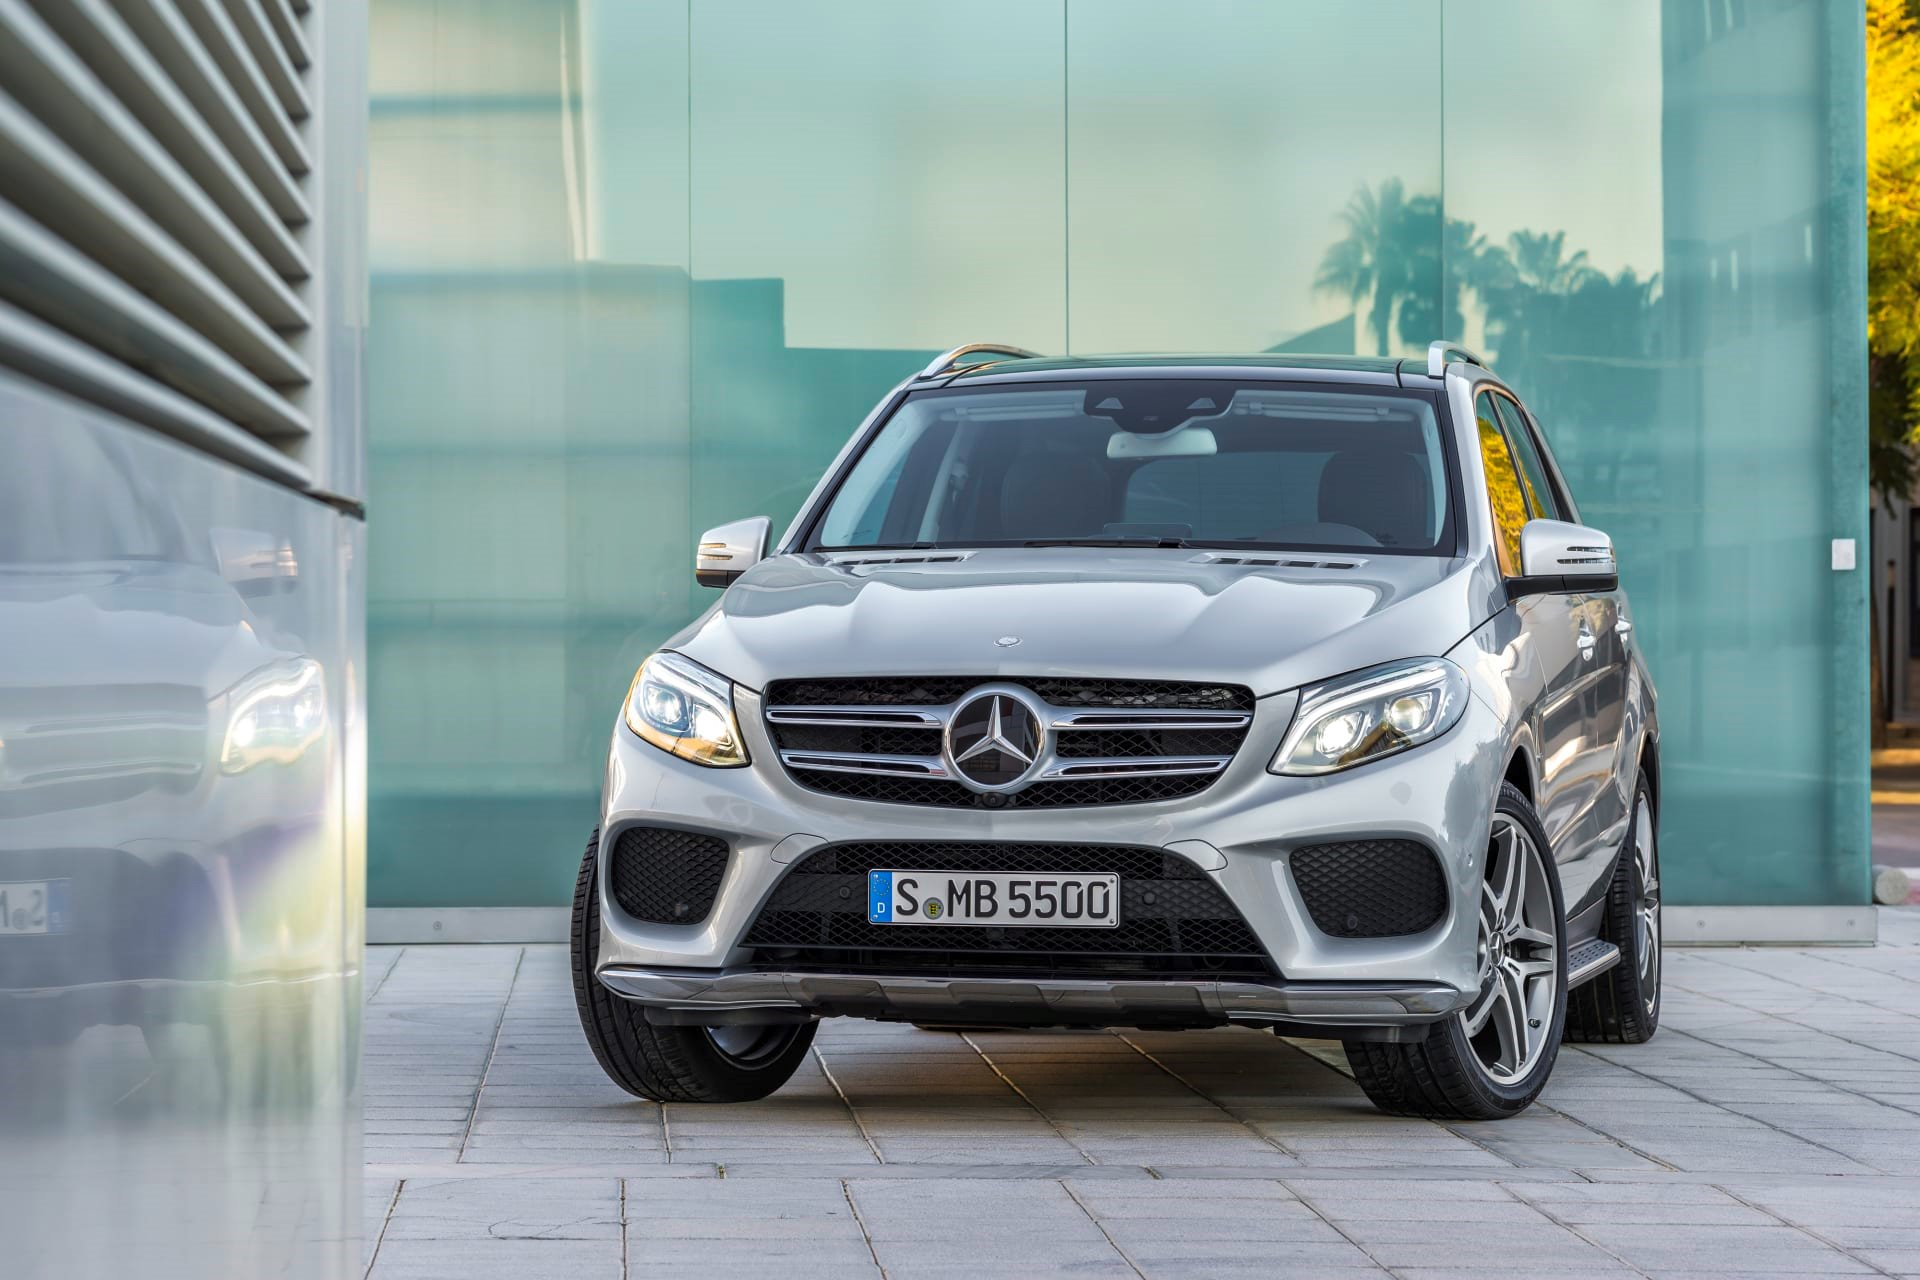 New 2020 Mercedes-Benz GLE 350 4MATIC GLE 350 4MATIC for sale $56,200 at M and V Leasing in Brooklyn NY 11223 1